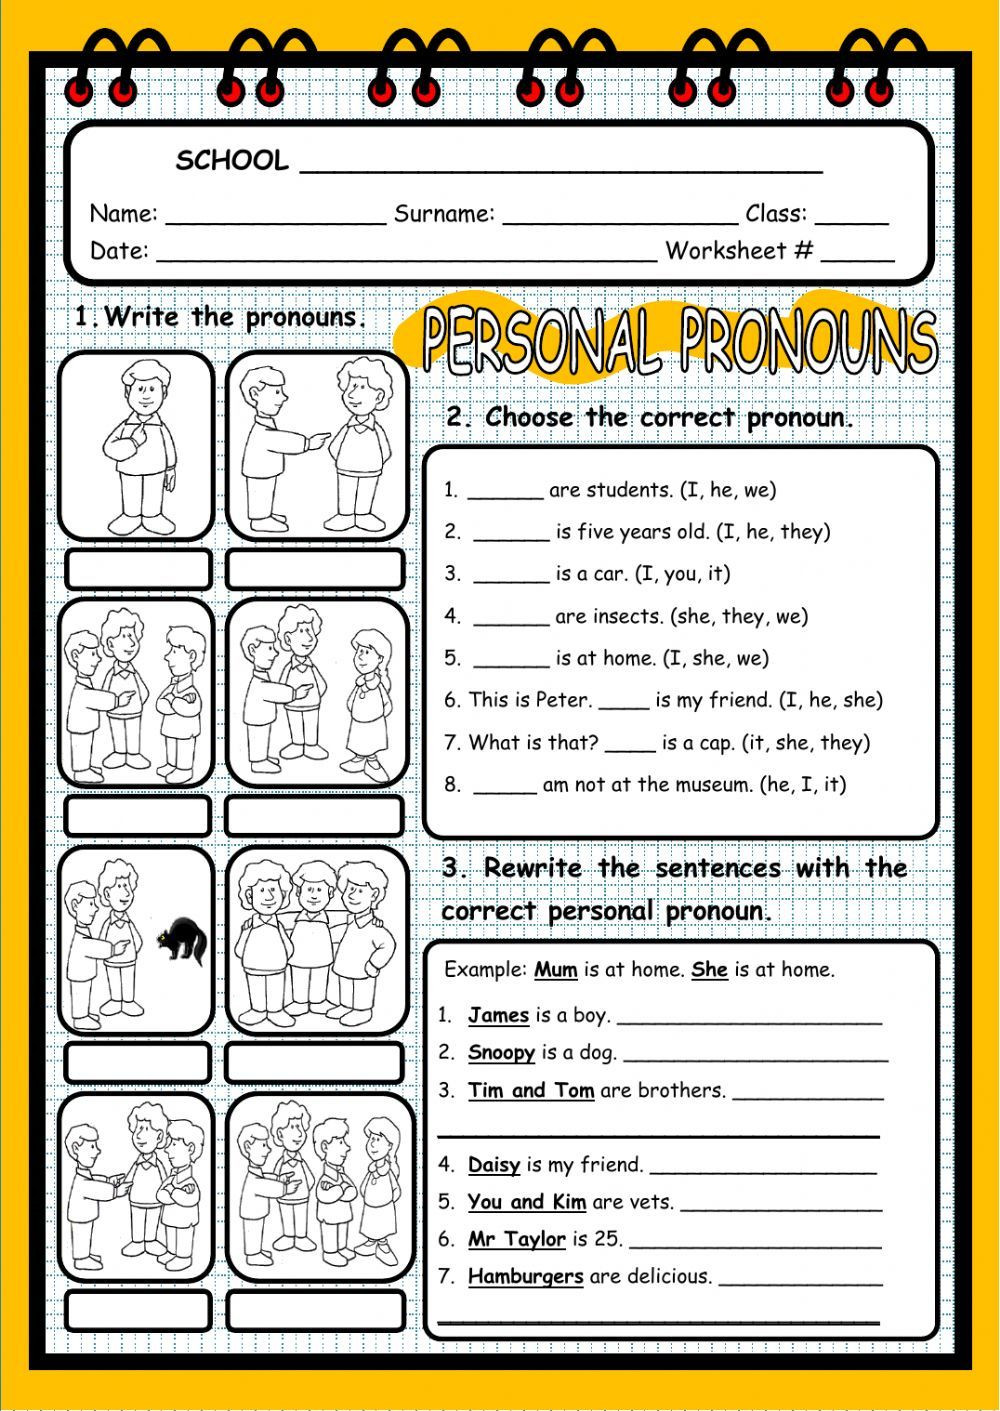 Second Grade Pronoun Worksheets Personal Pronouns Interactive and Able Worksheet